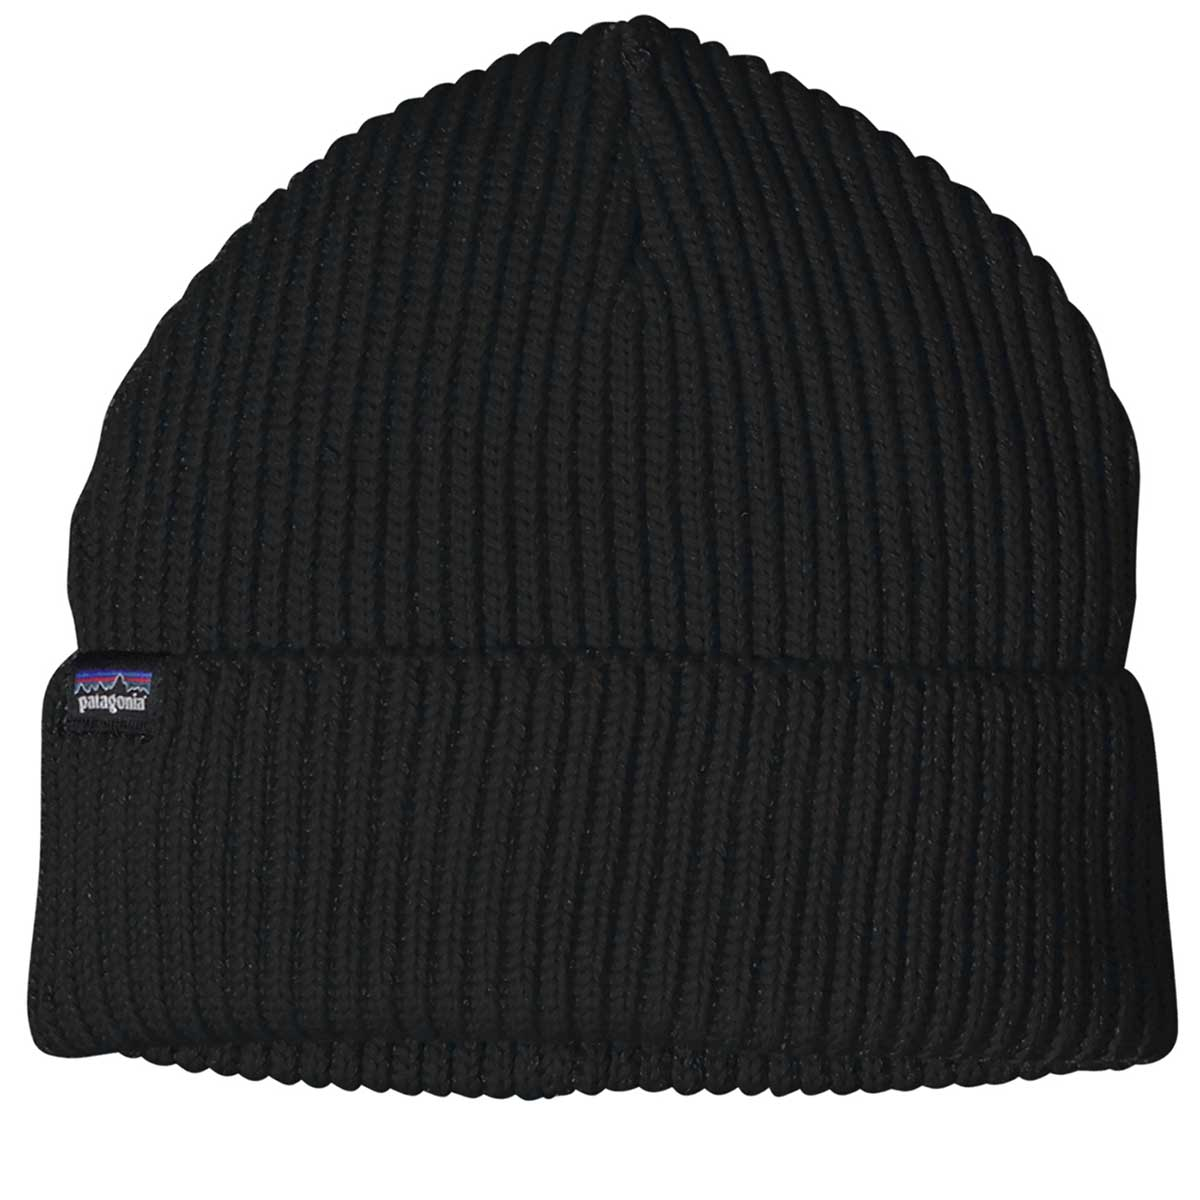 Patagonia Fishermans Rolled Beanie in Black